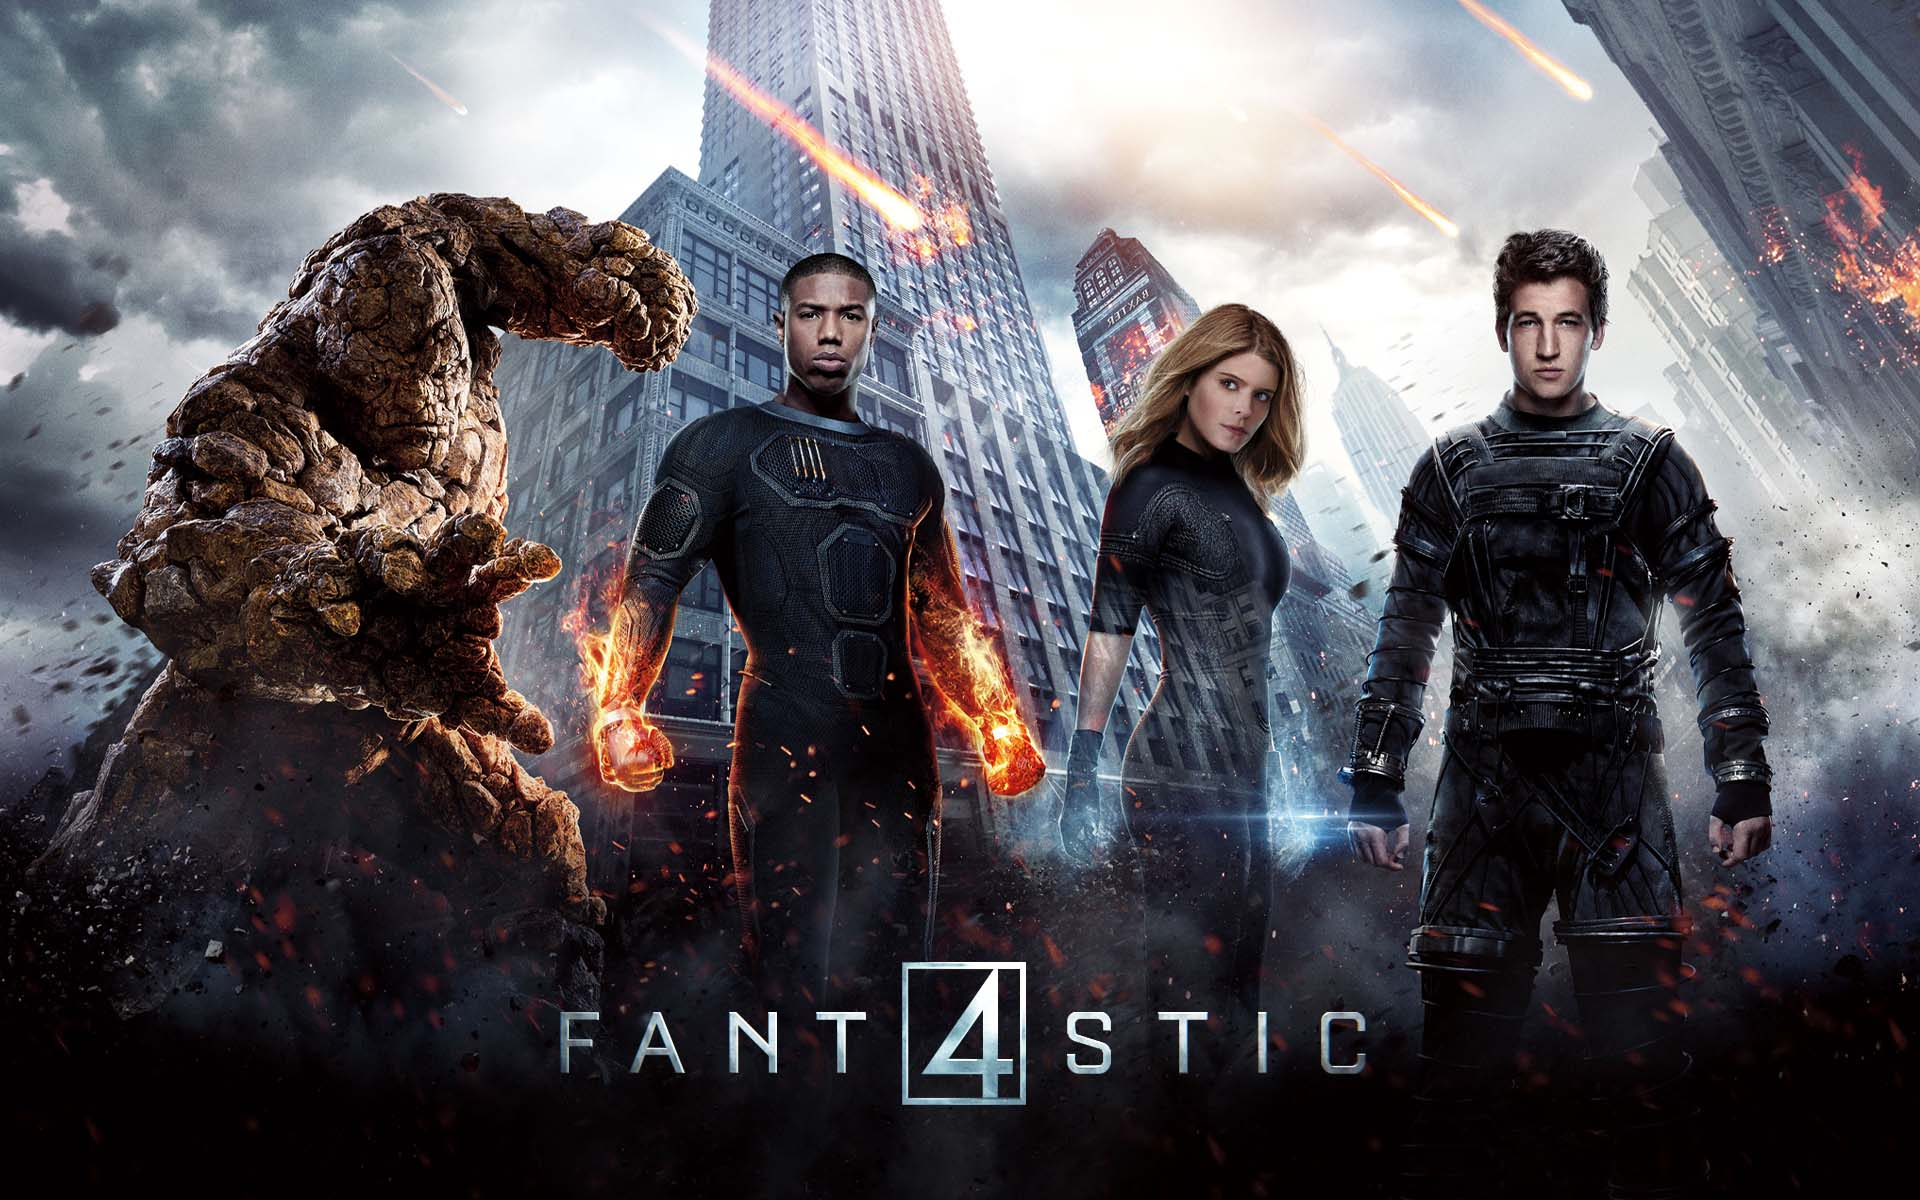 fantastic-four-2015-poster-movie-2015